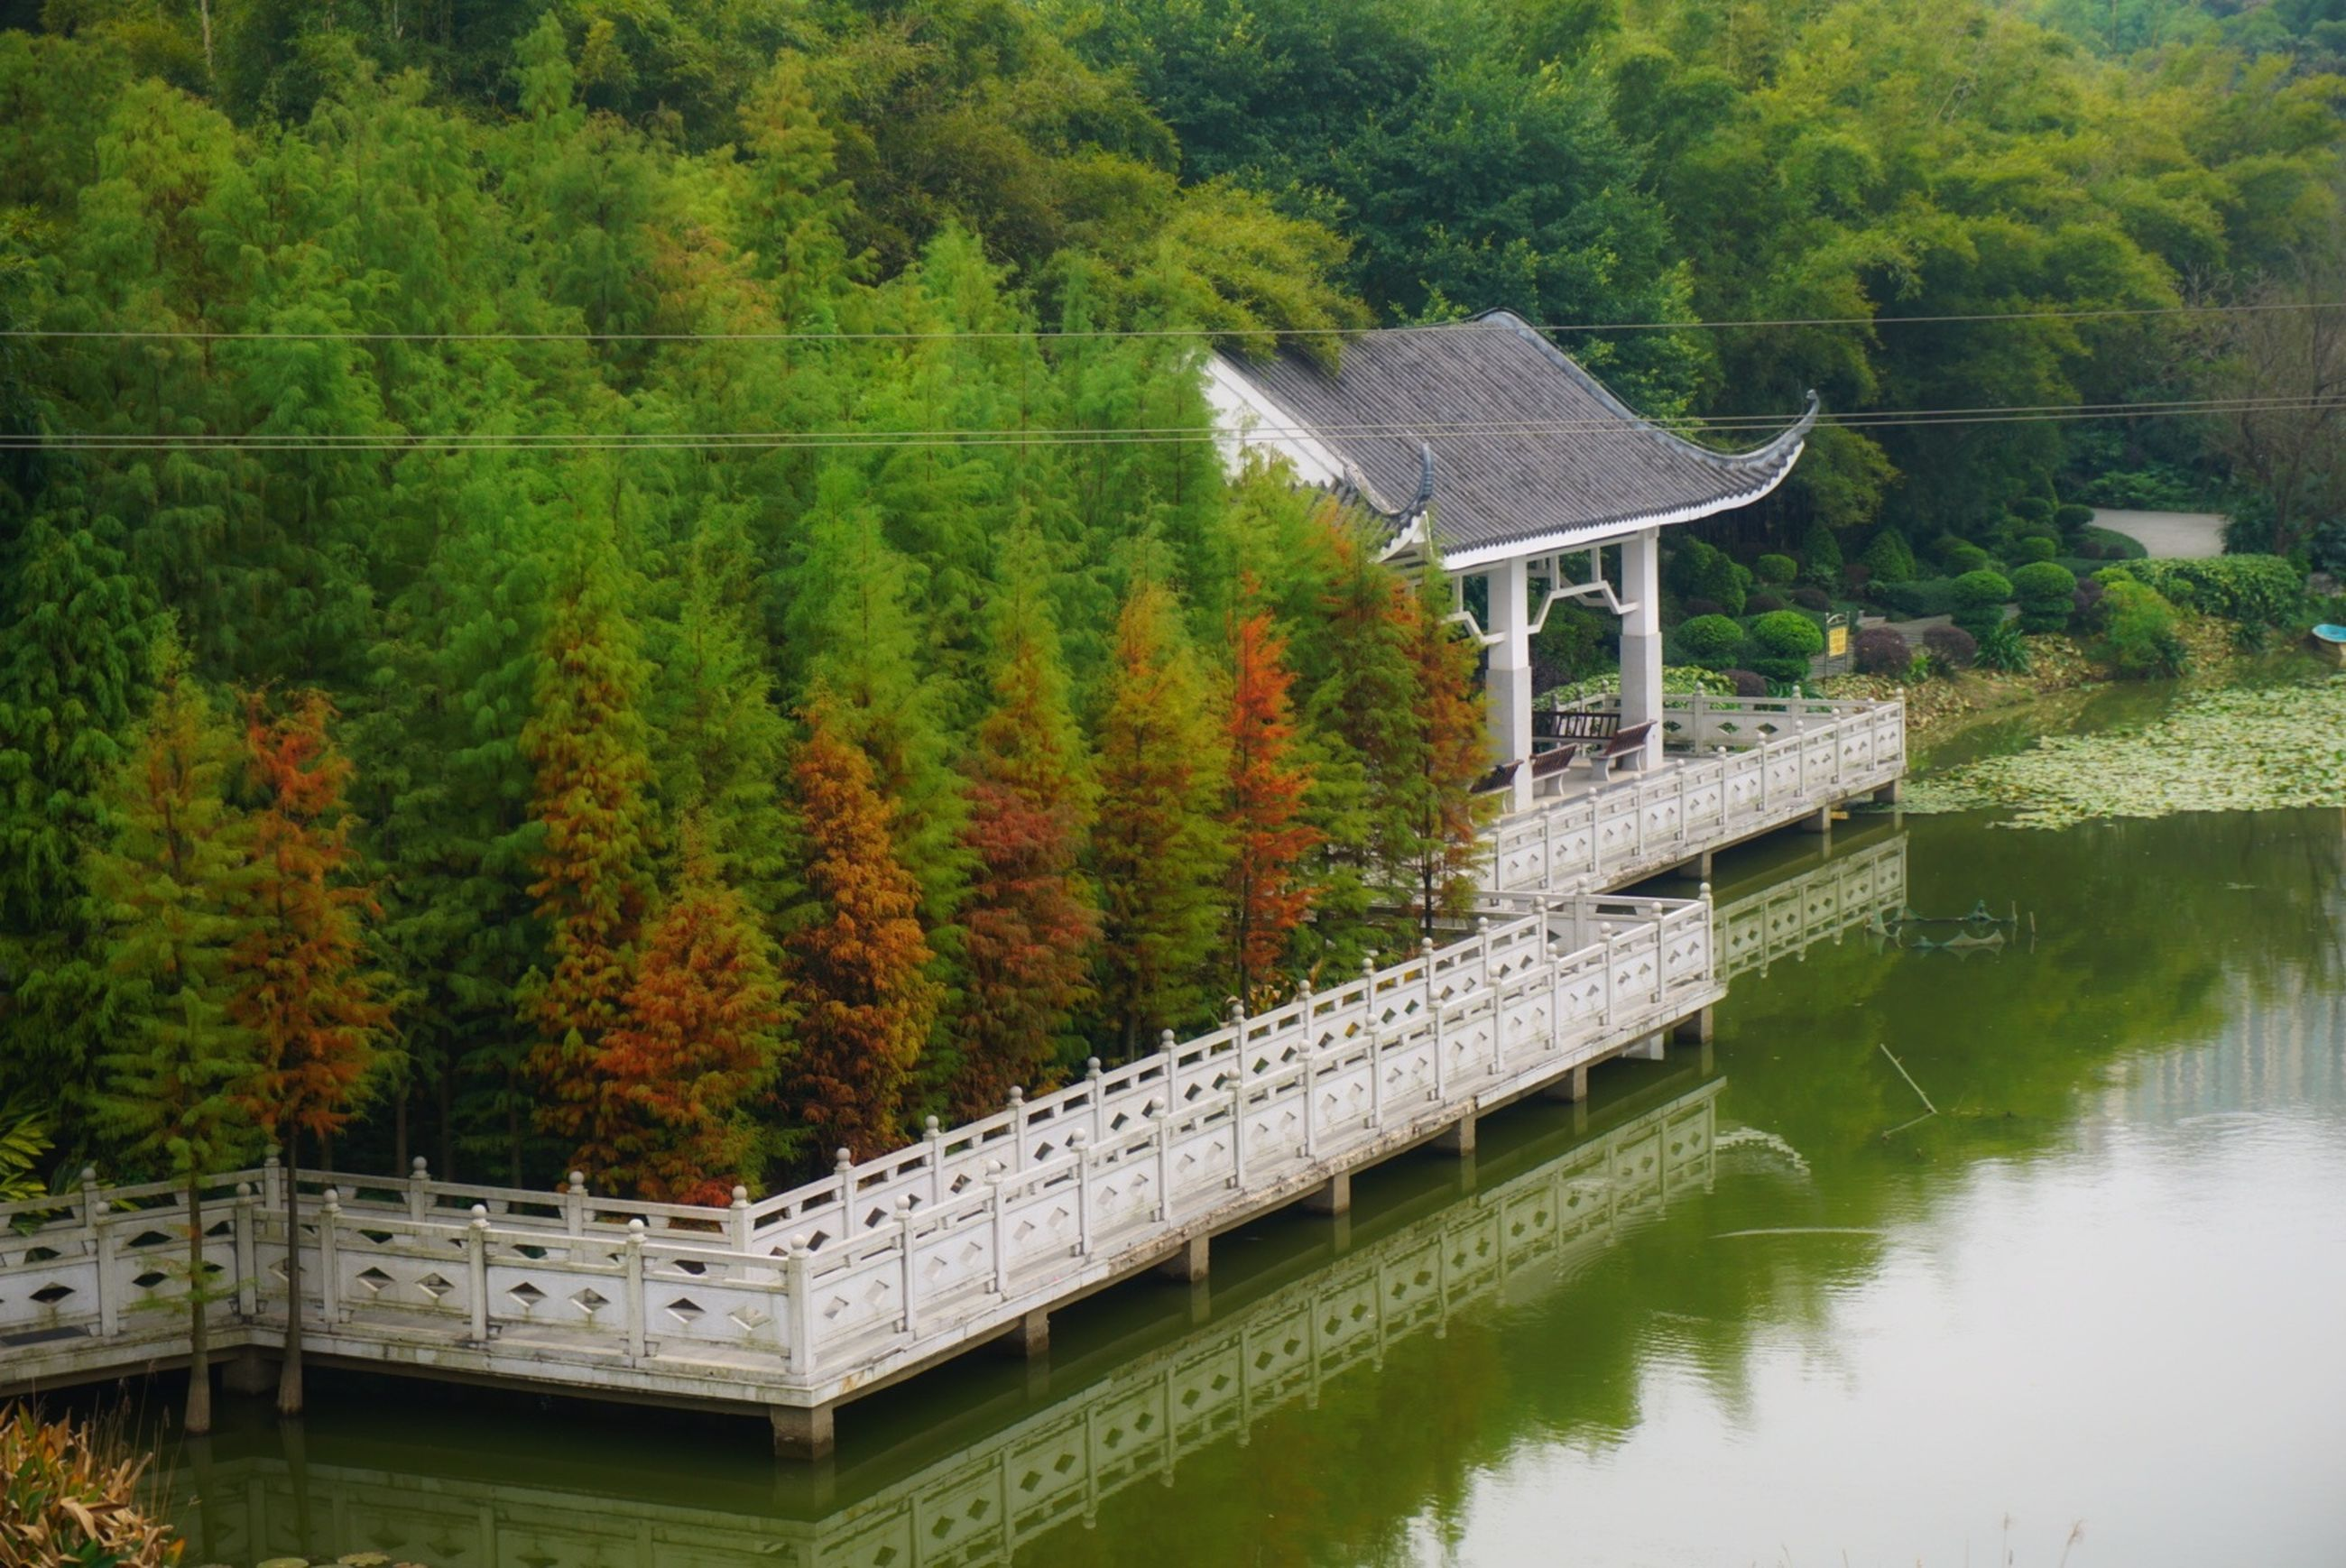 tree, water, built structure, architecture, nature, fuel and power generation, beauty in nature, scenics, no people, idyllic, tranquil scene, green color, building exterior, alternative energy, tranquility, growth, connection, renewable energy, outdoors, day, japanese garden